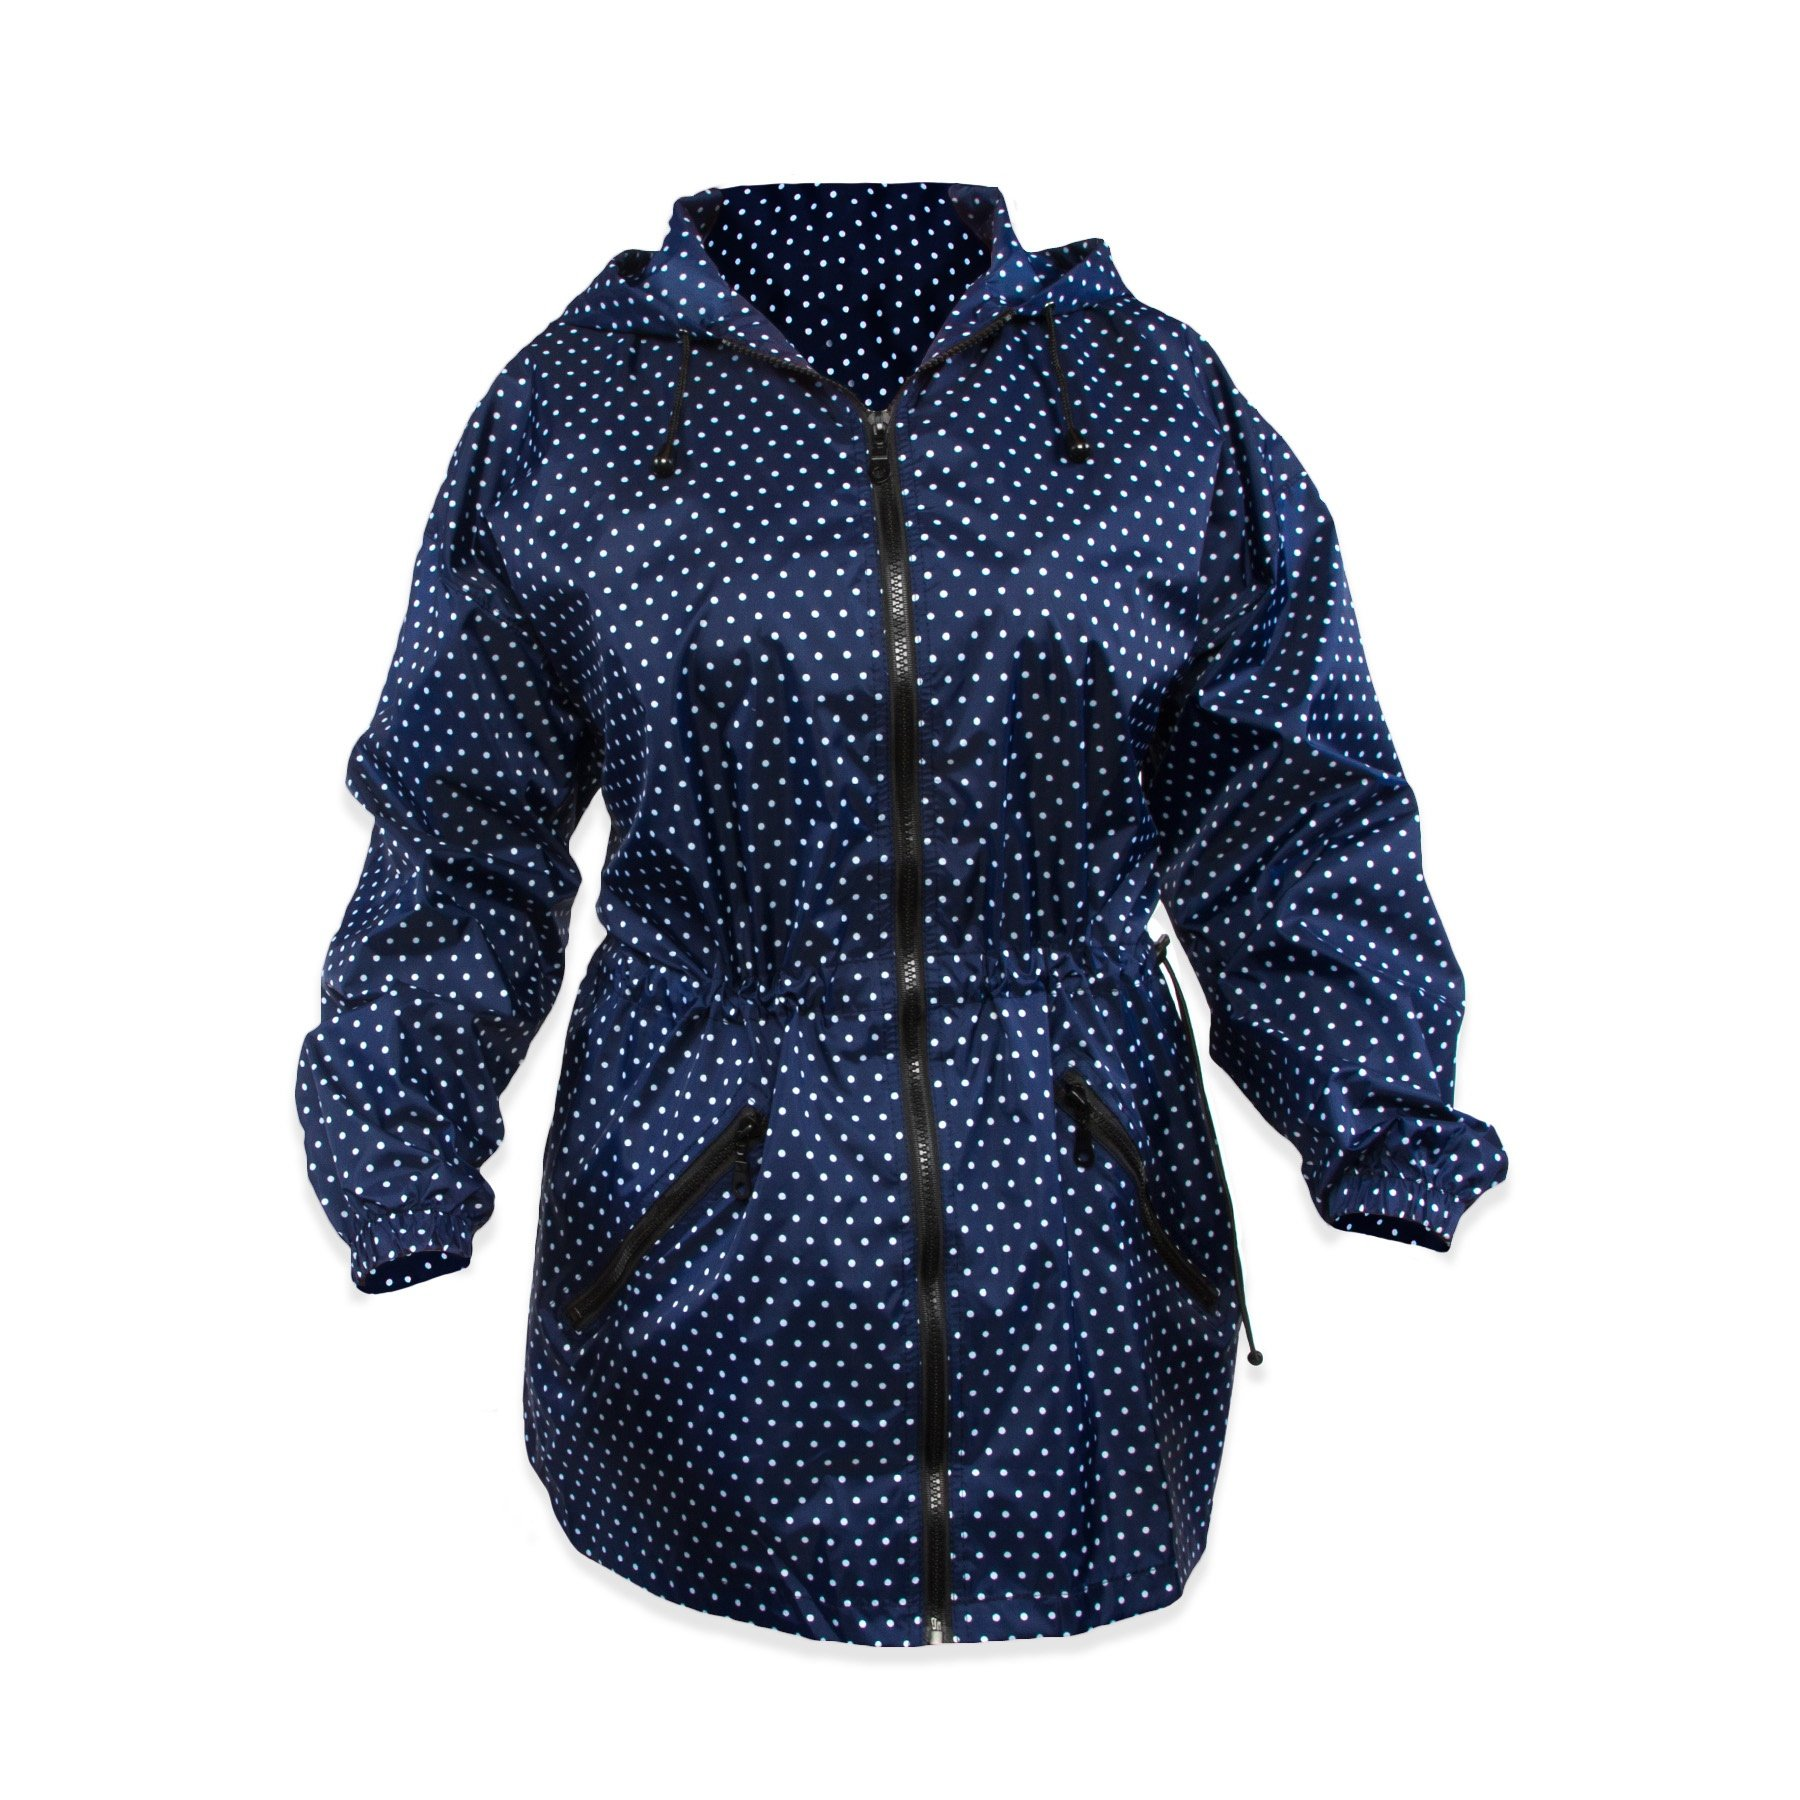 ShedRain Packable Anorak Jacket Lightweight BITTY DOT Blue, Small/Medium by Shed Rain